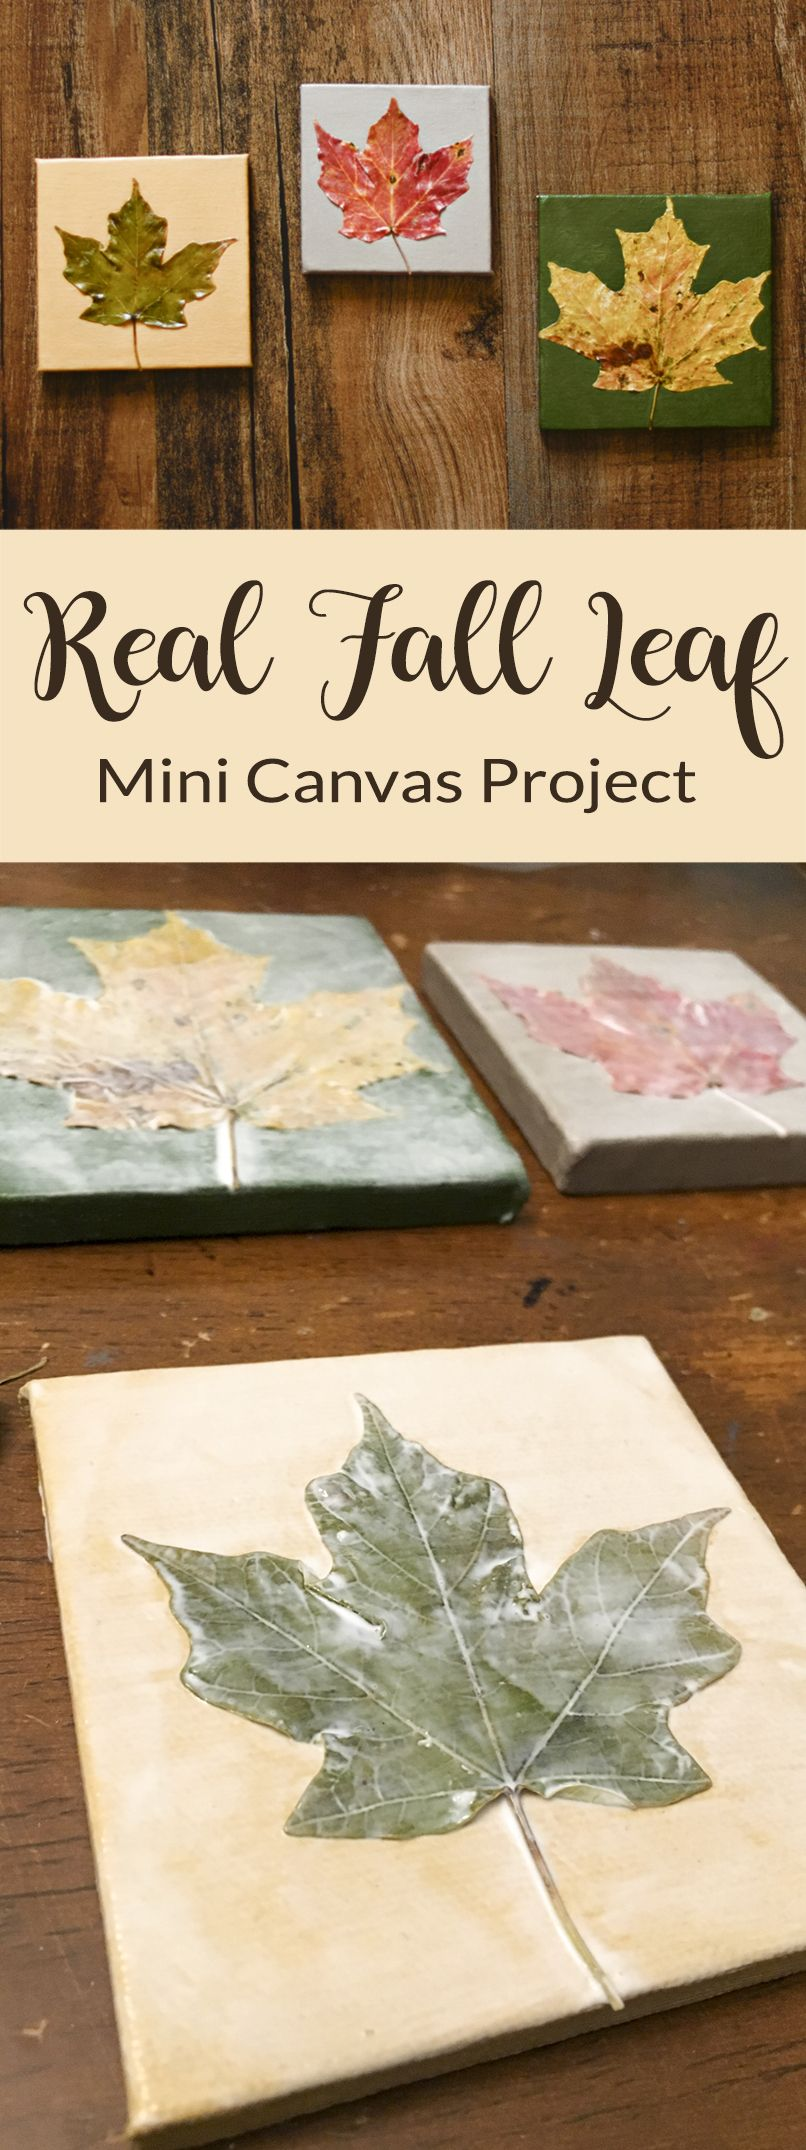 Real Fall Leaf Mini Canvases Preserve Fall Leaves in Cute little works of art! #leafcrafts